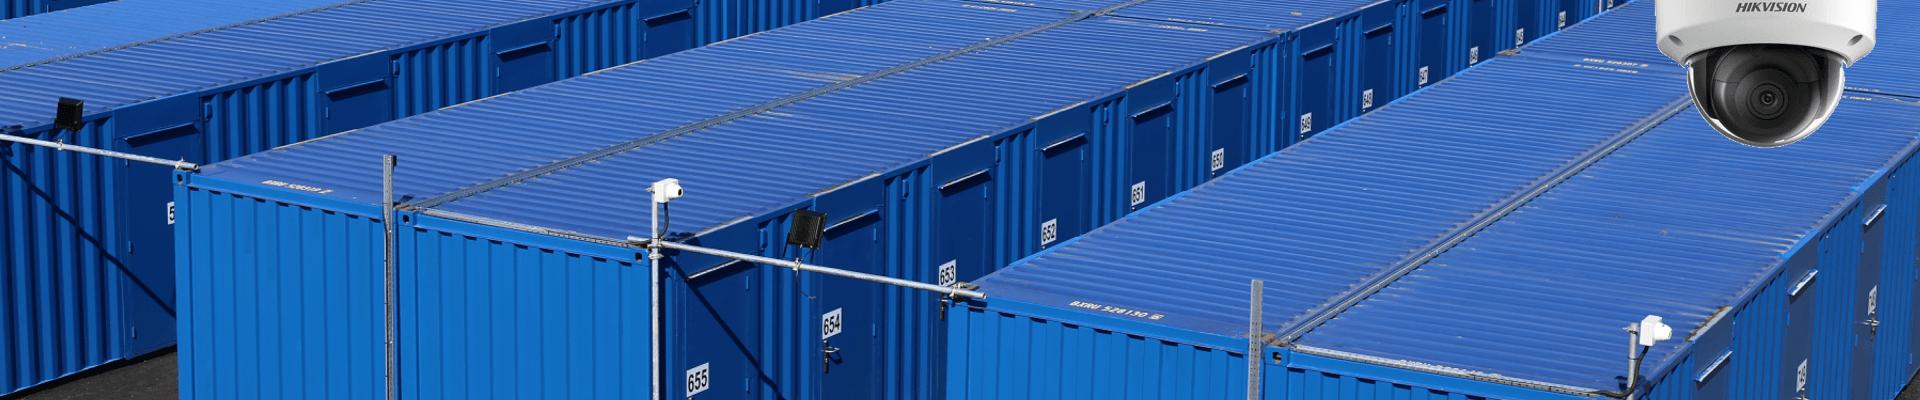 Container Storage in Exeter and Internal Storage in Salisbury